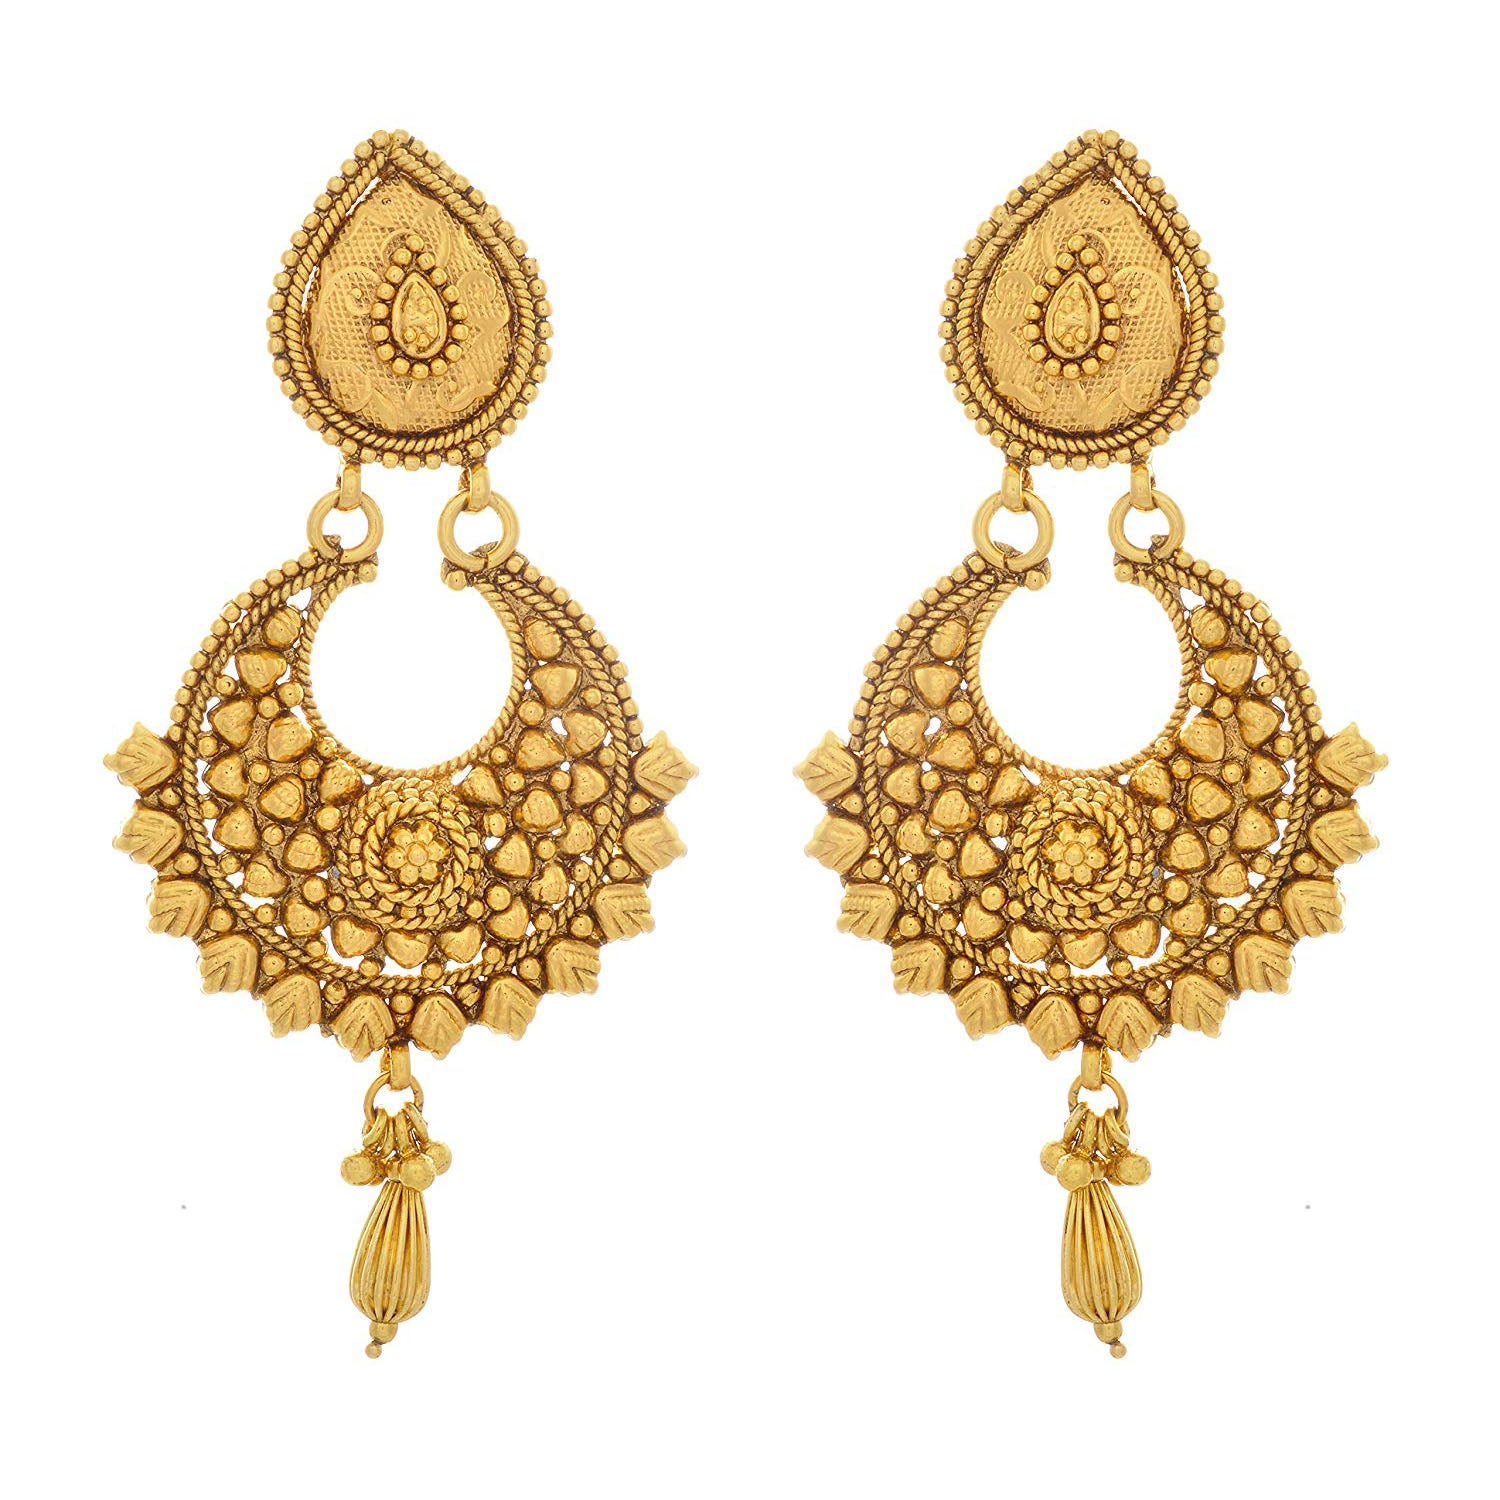 Traditional Ethnic One Gram Gold Plated Earrings For Women And Girls.